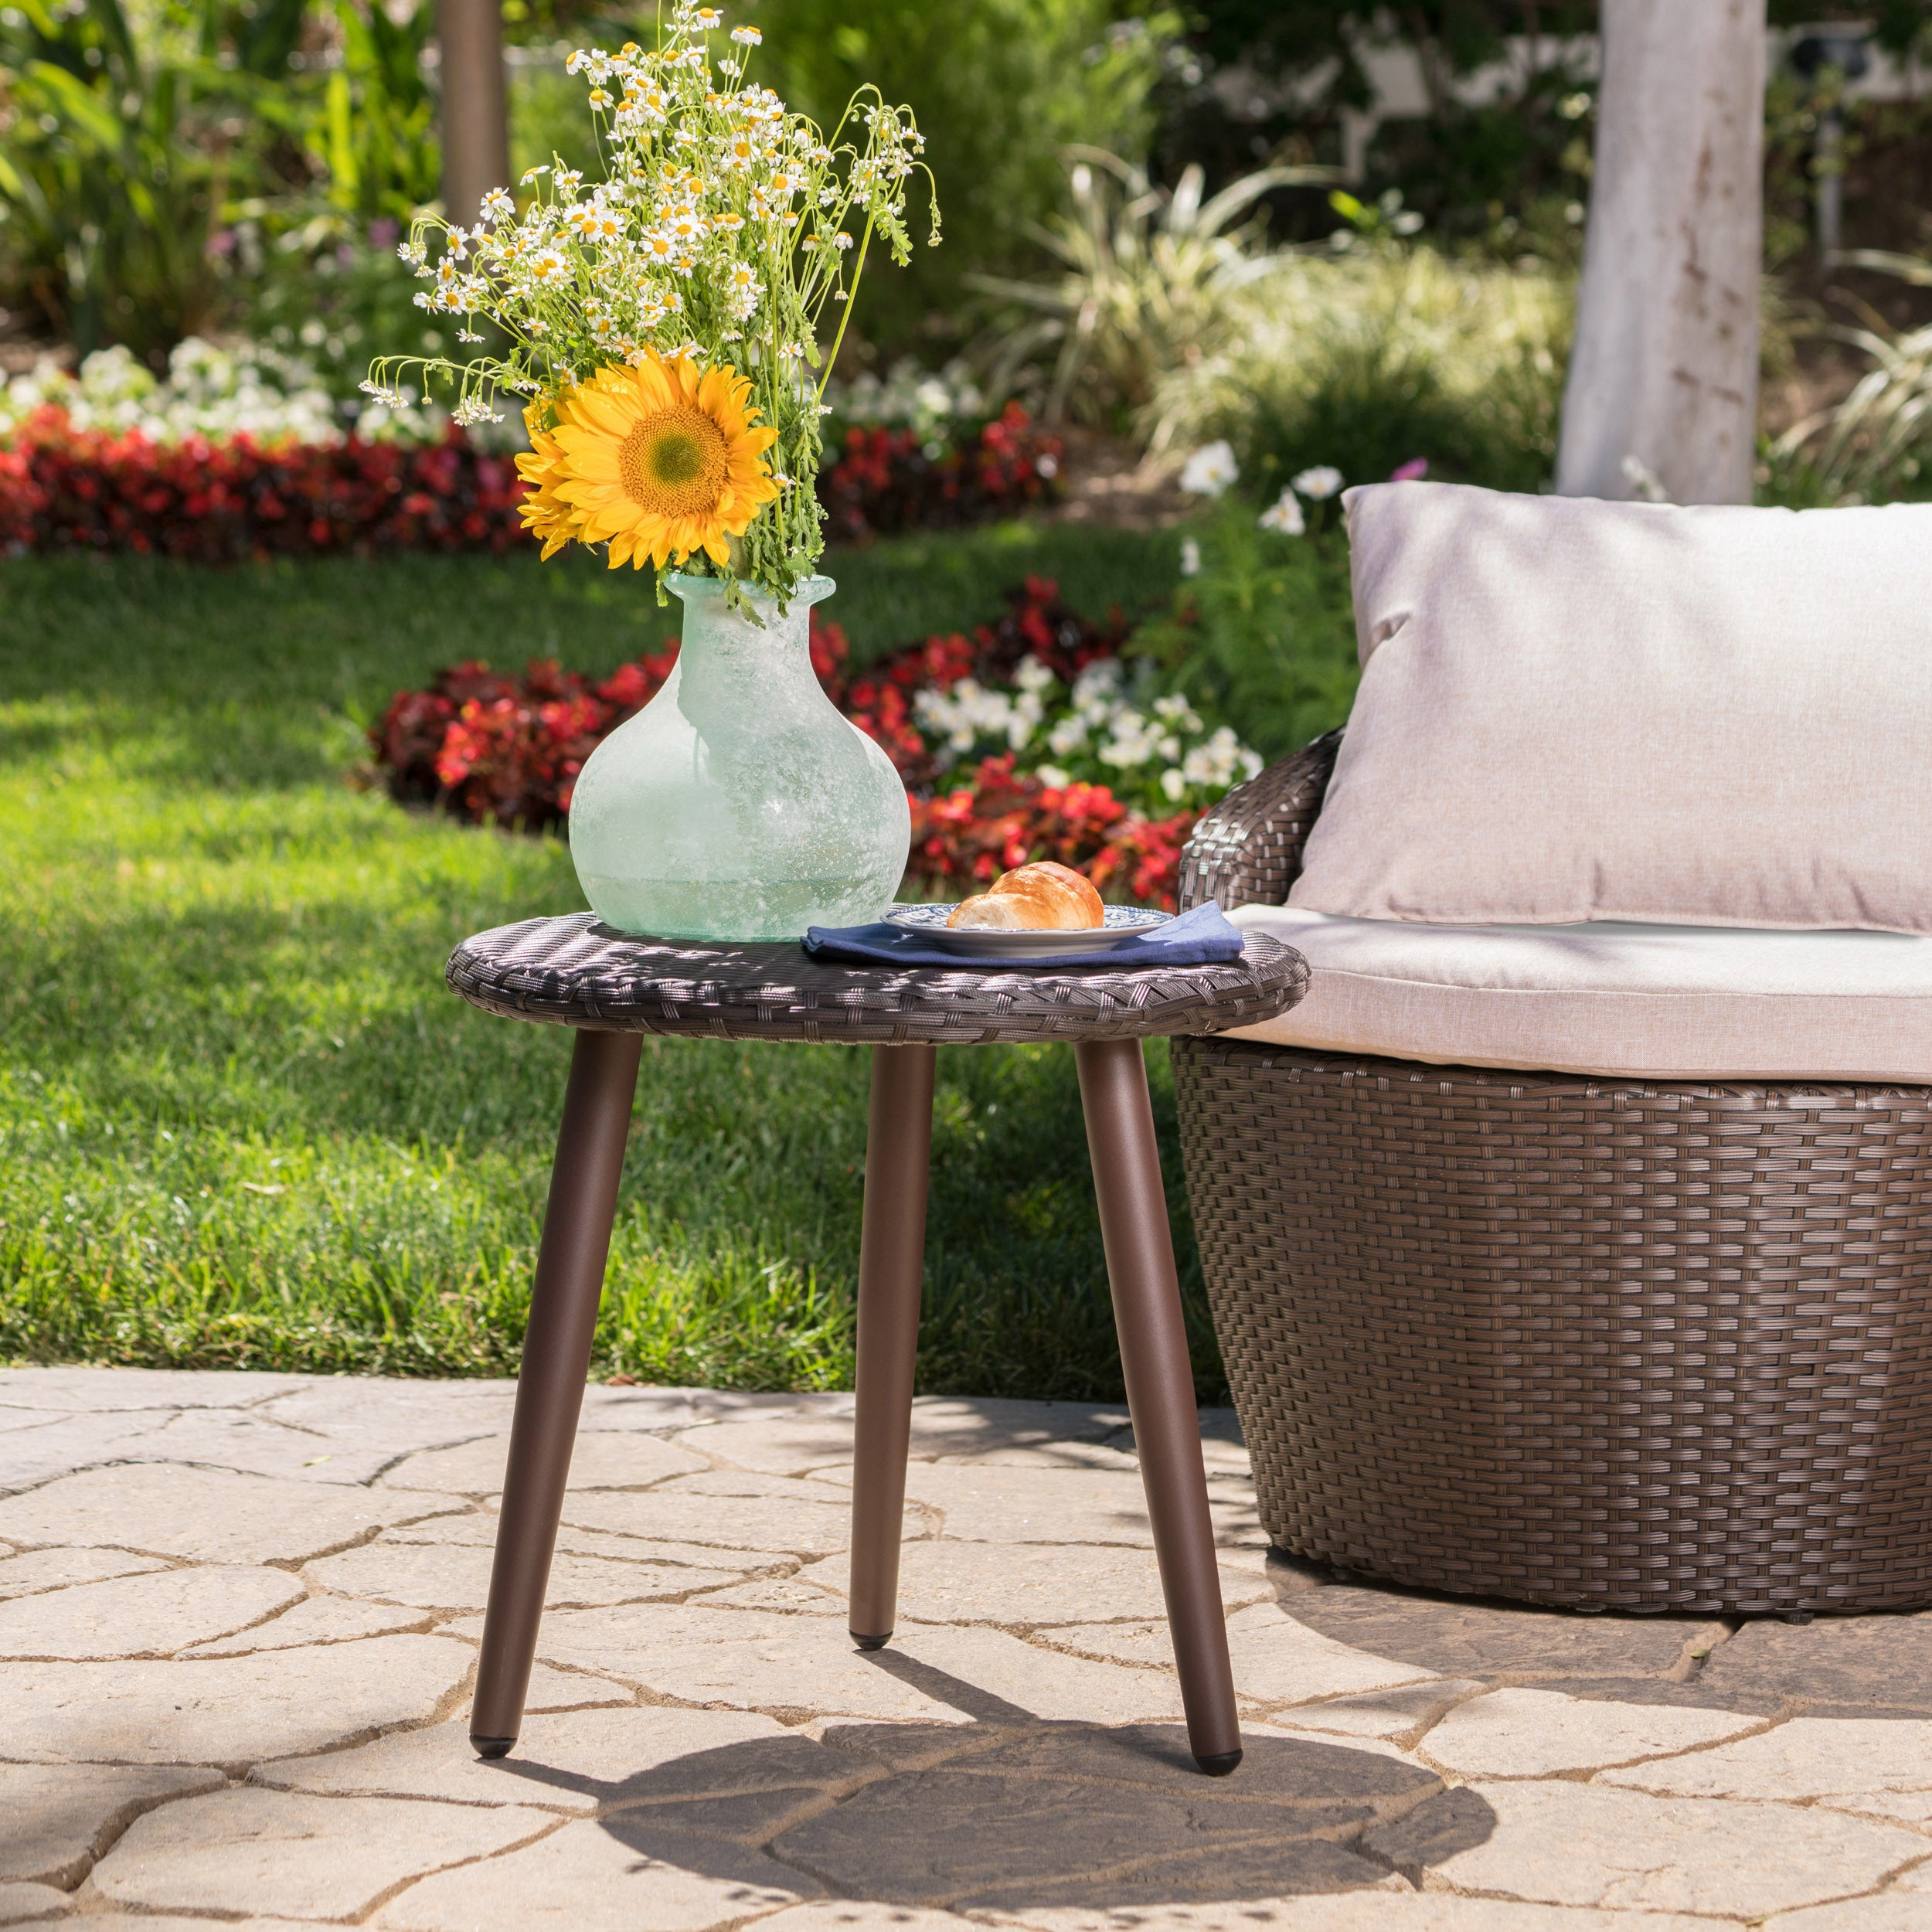 Easter Island Outdoor Round Wicker Accent Table By Christopher Knight Home On Free Shipping Today 15424737